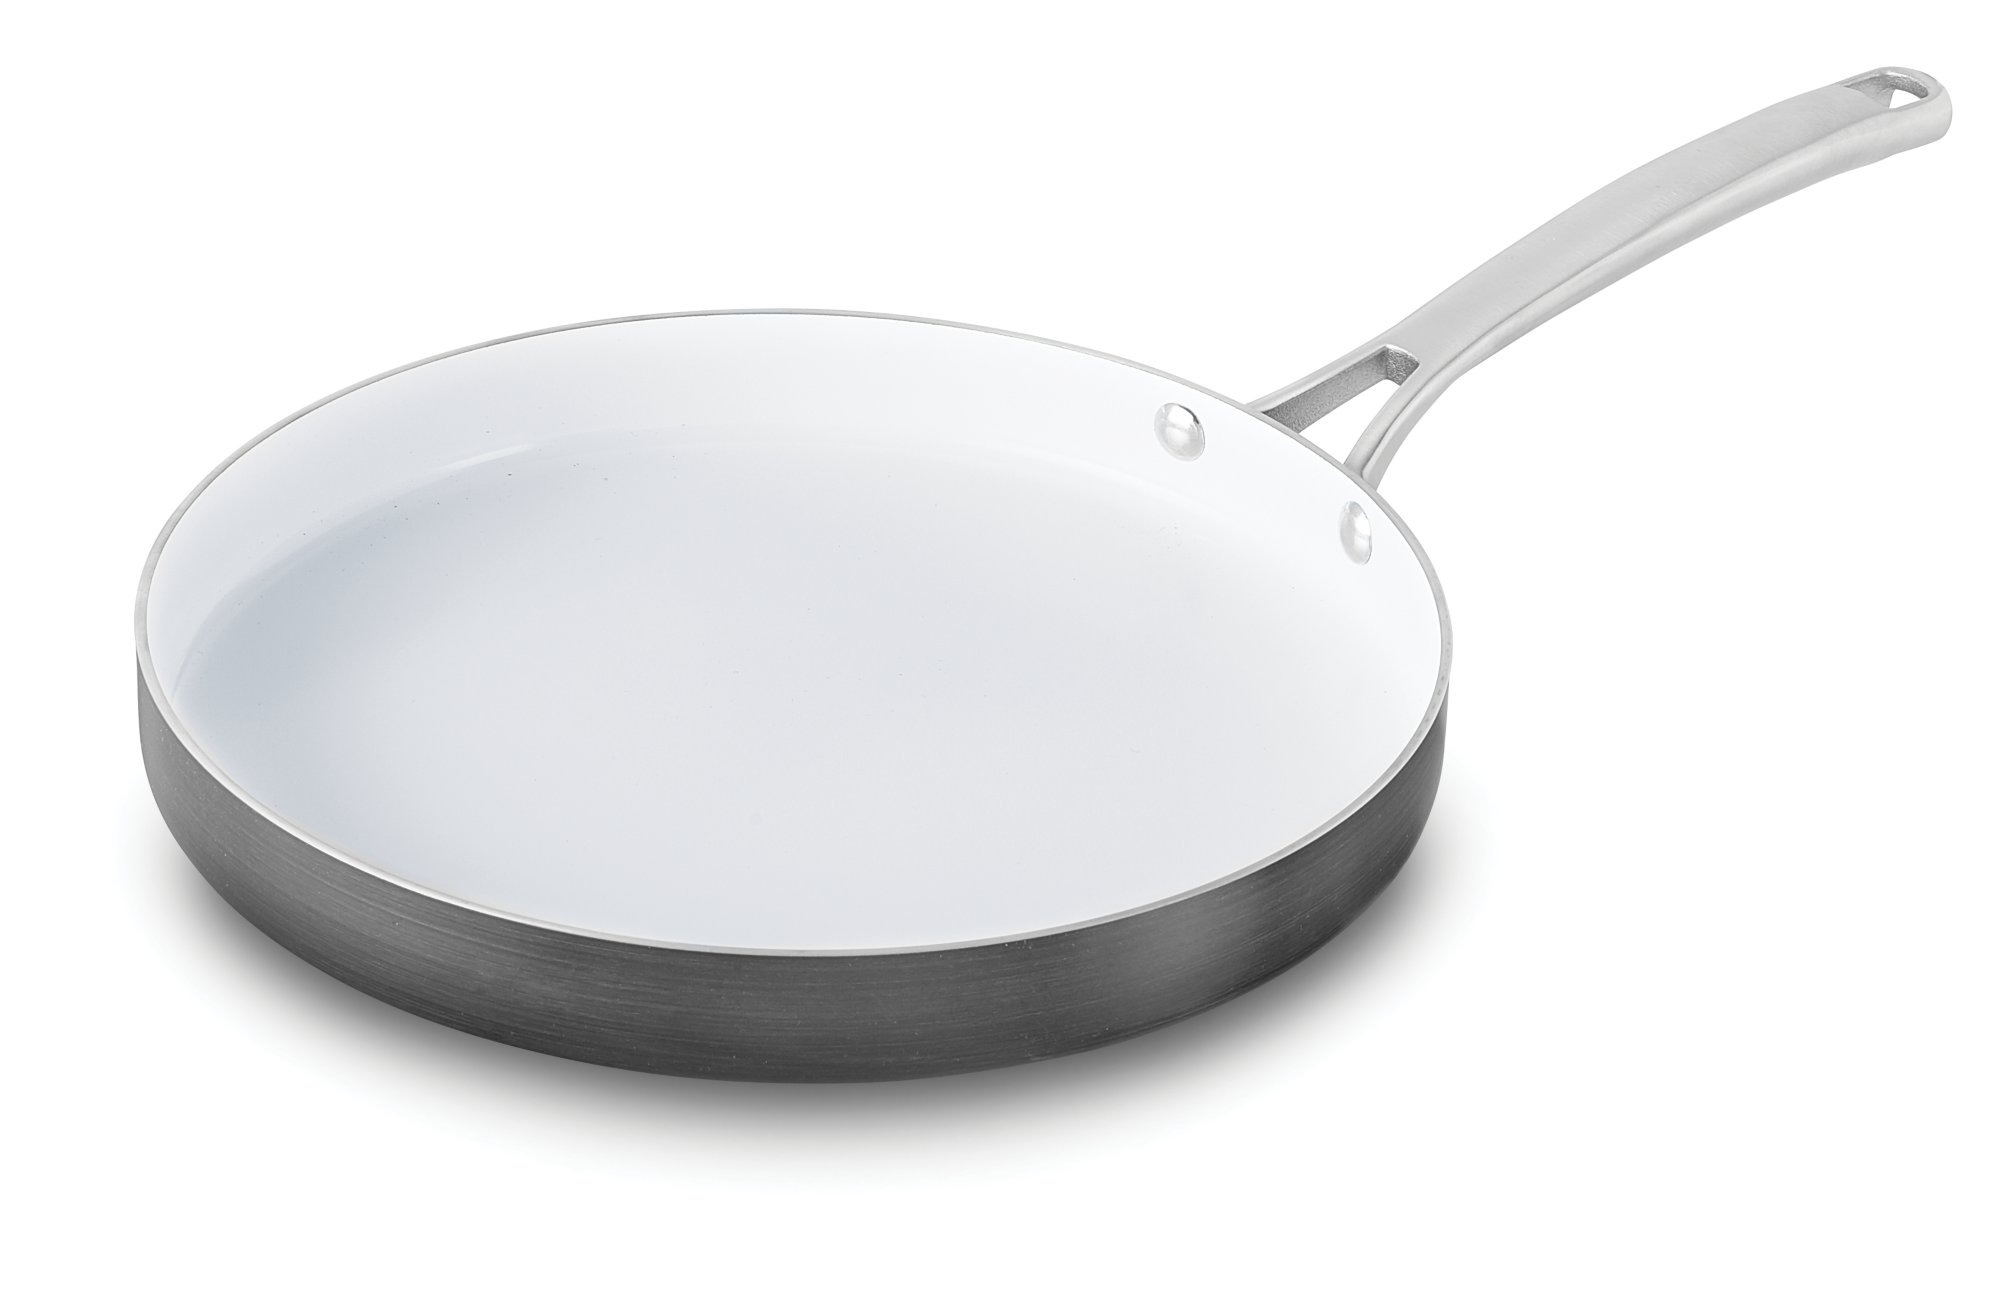 Calphalon Classic™ Ceramic Nonstick 12-in. Round Griddle Pan